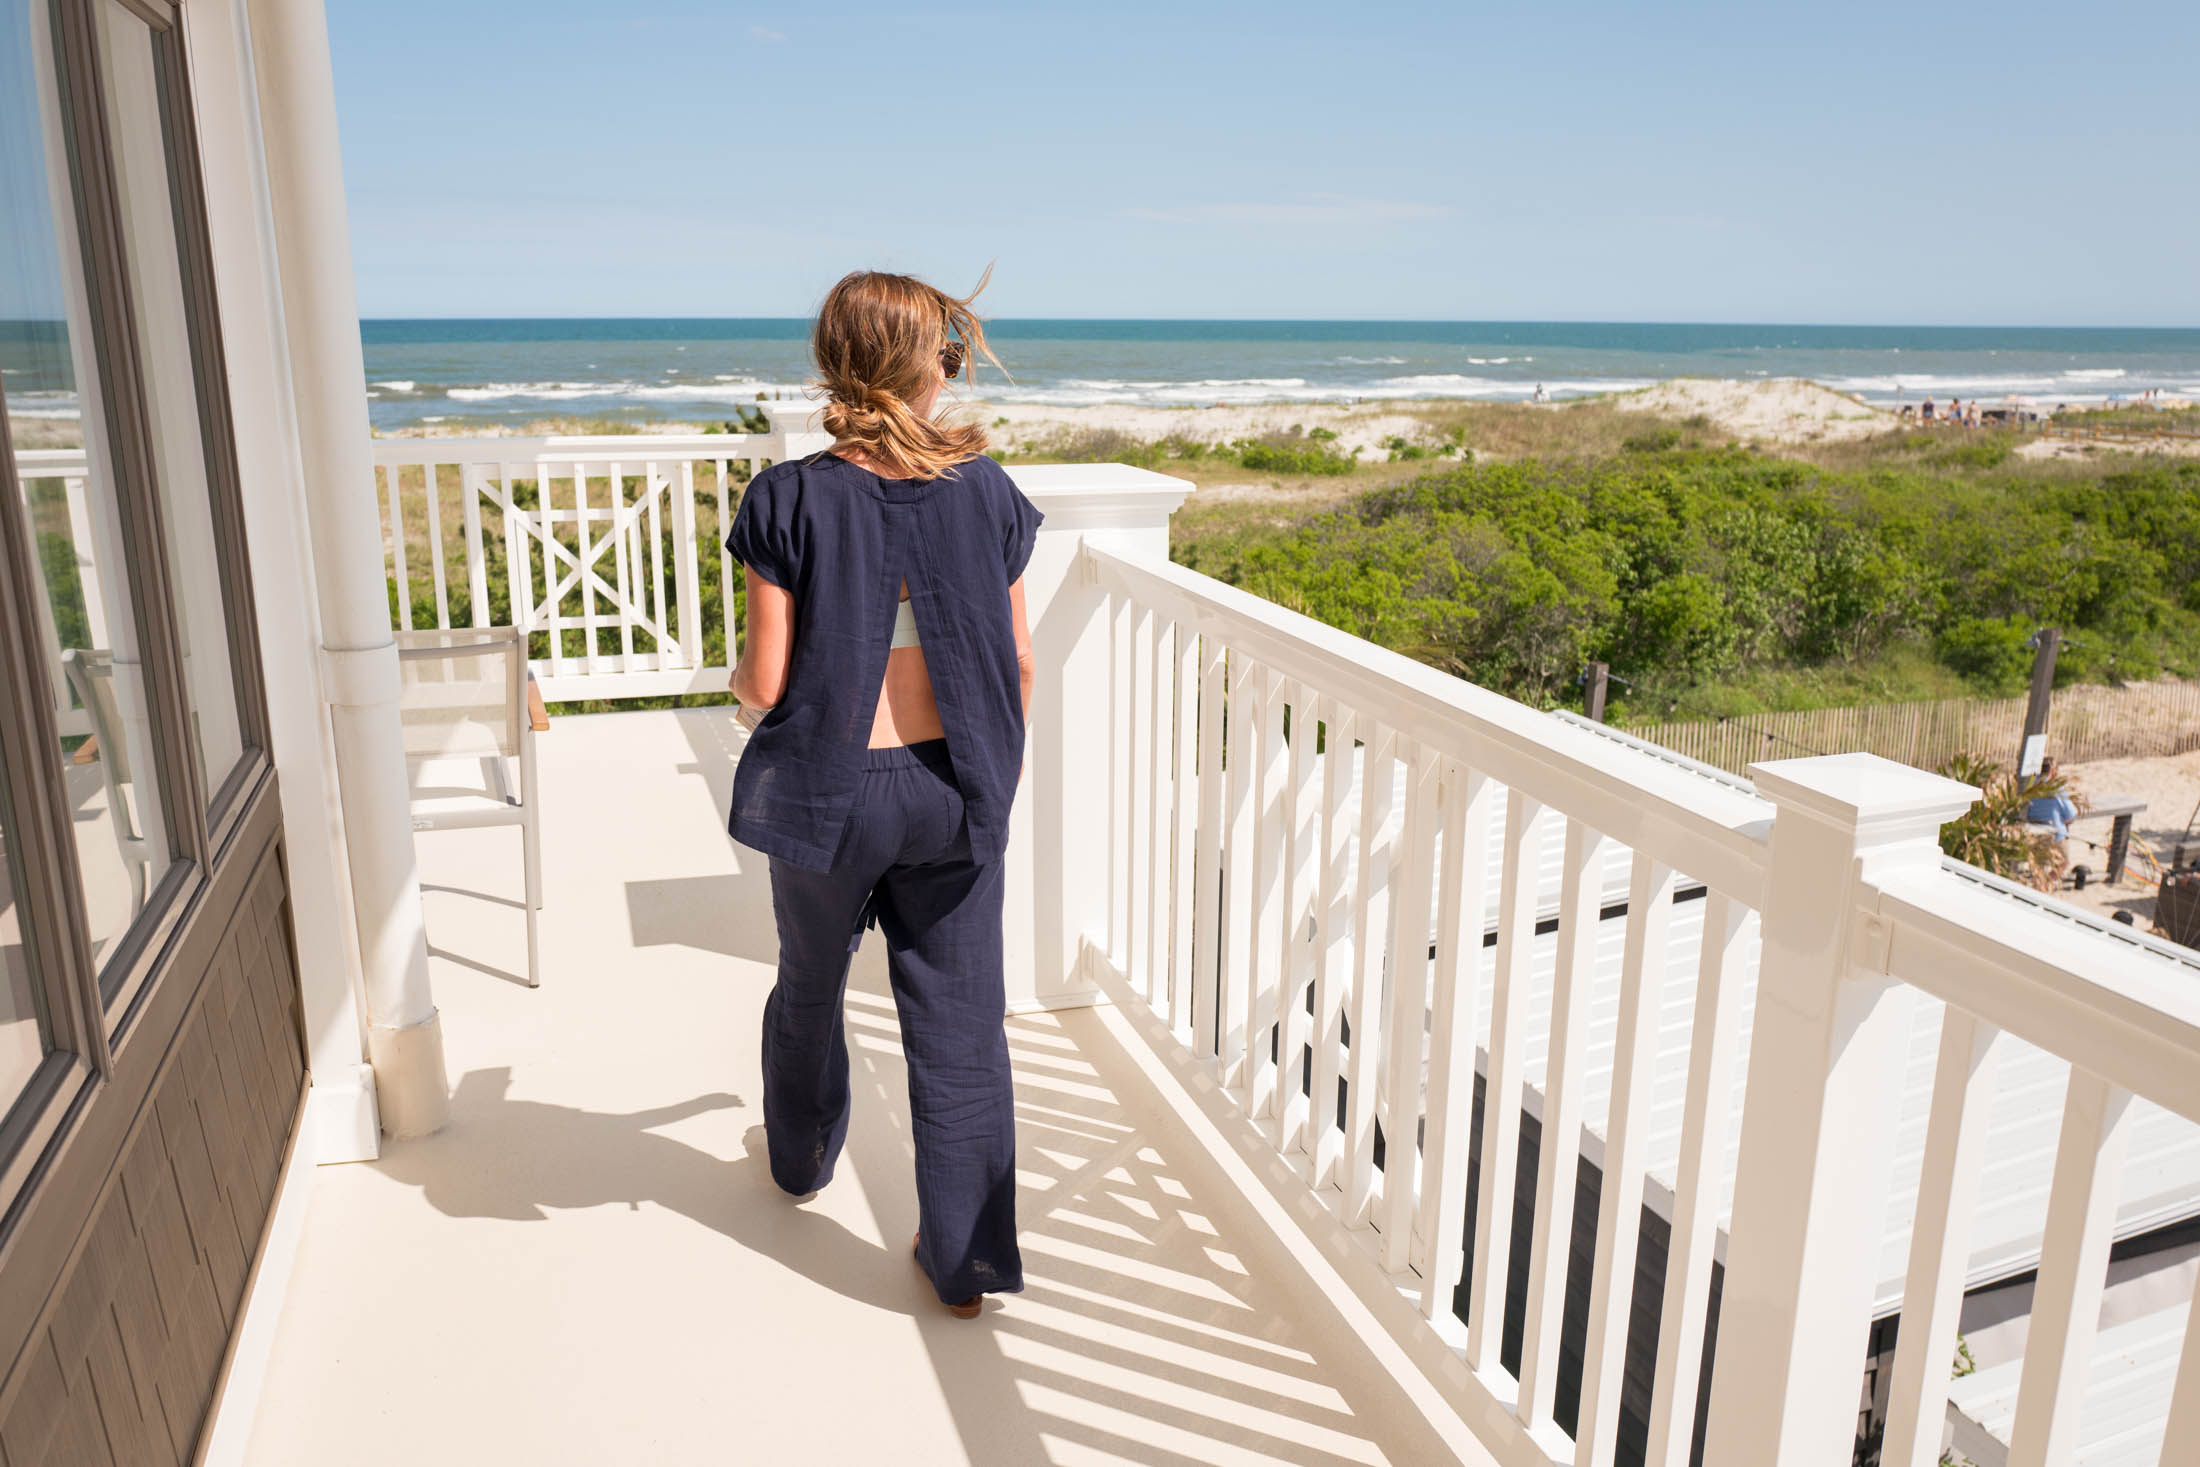 A long weekend at the beach is the just right Rx for a summer refresh. I brought a li'l capsule wardrobe too, so here's my packing list for the shore.